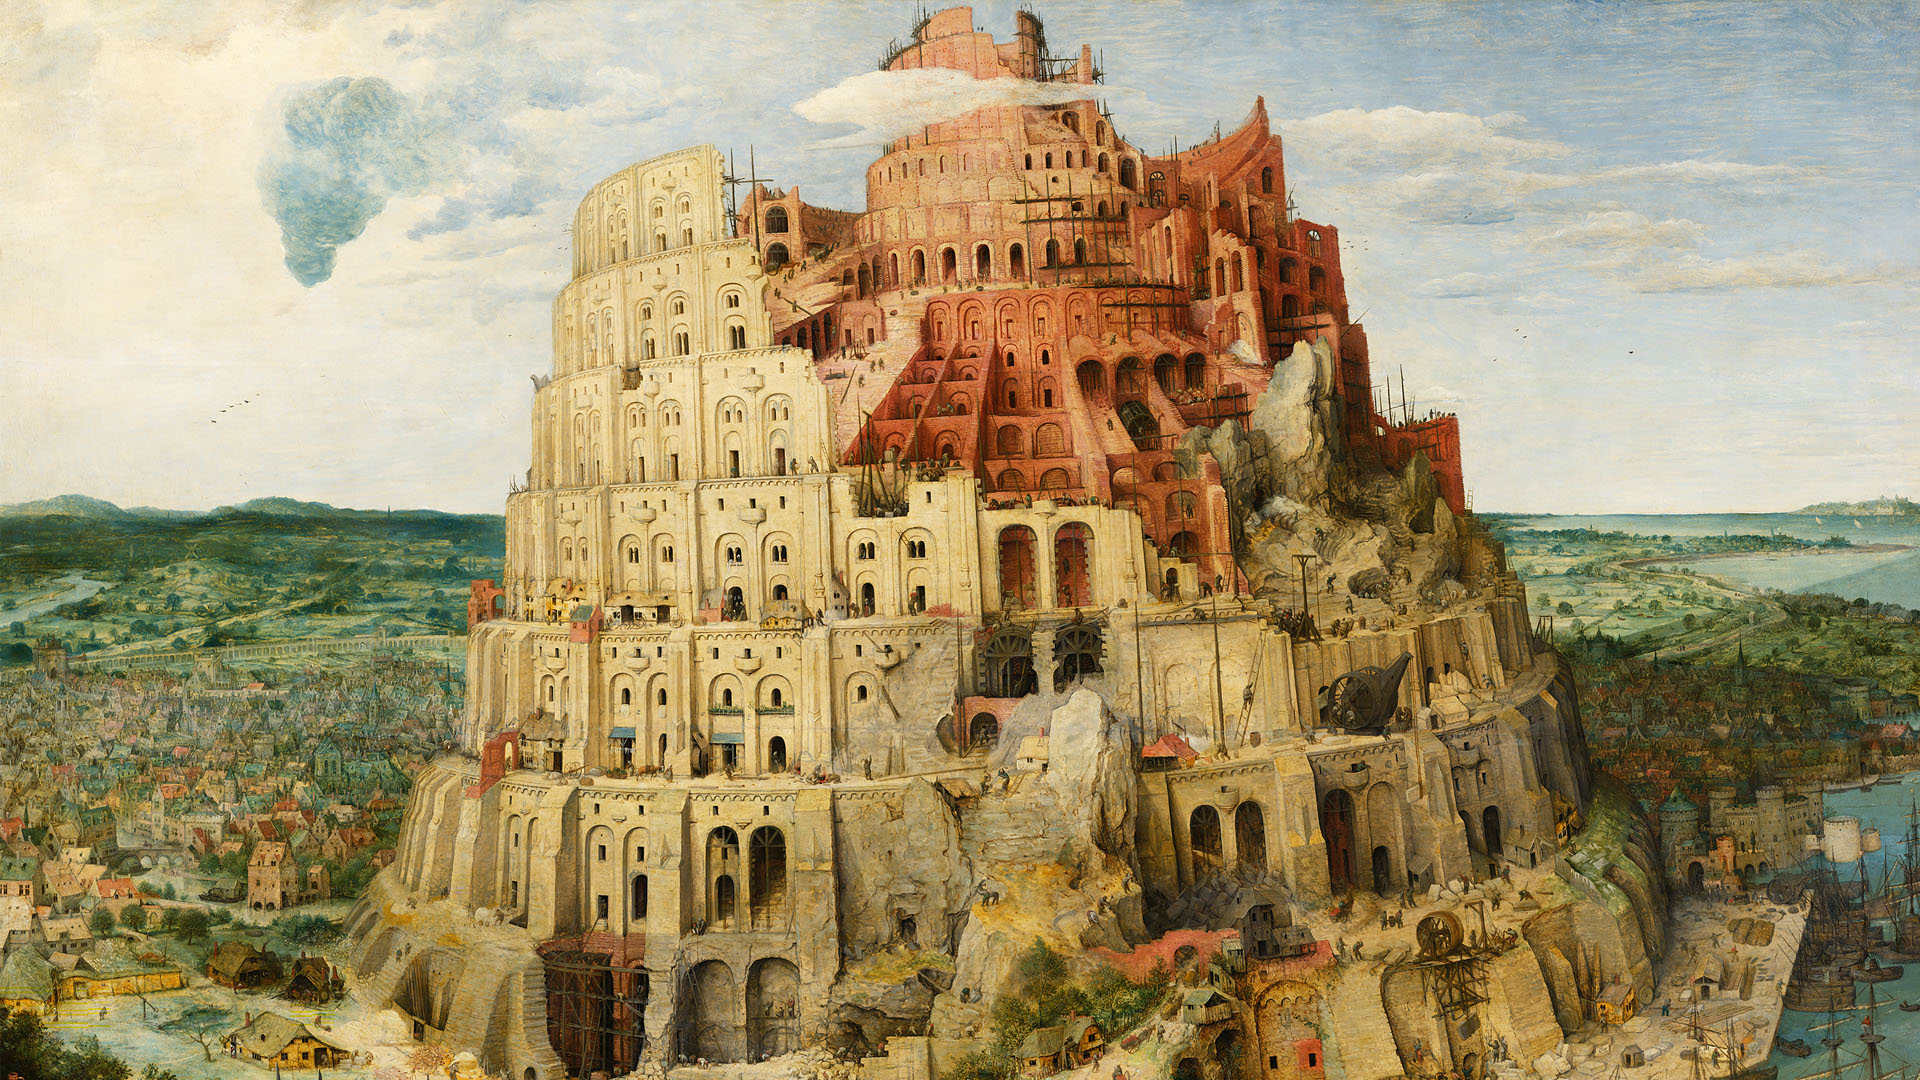 バベルの塔 Pieter Bruegel - The Tower of Babel 1920x1080